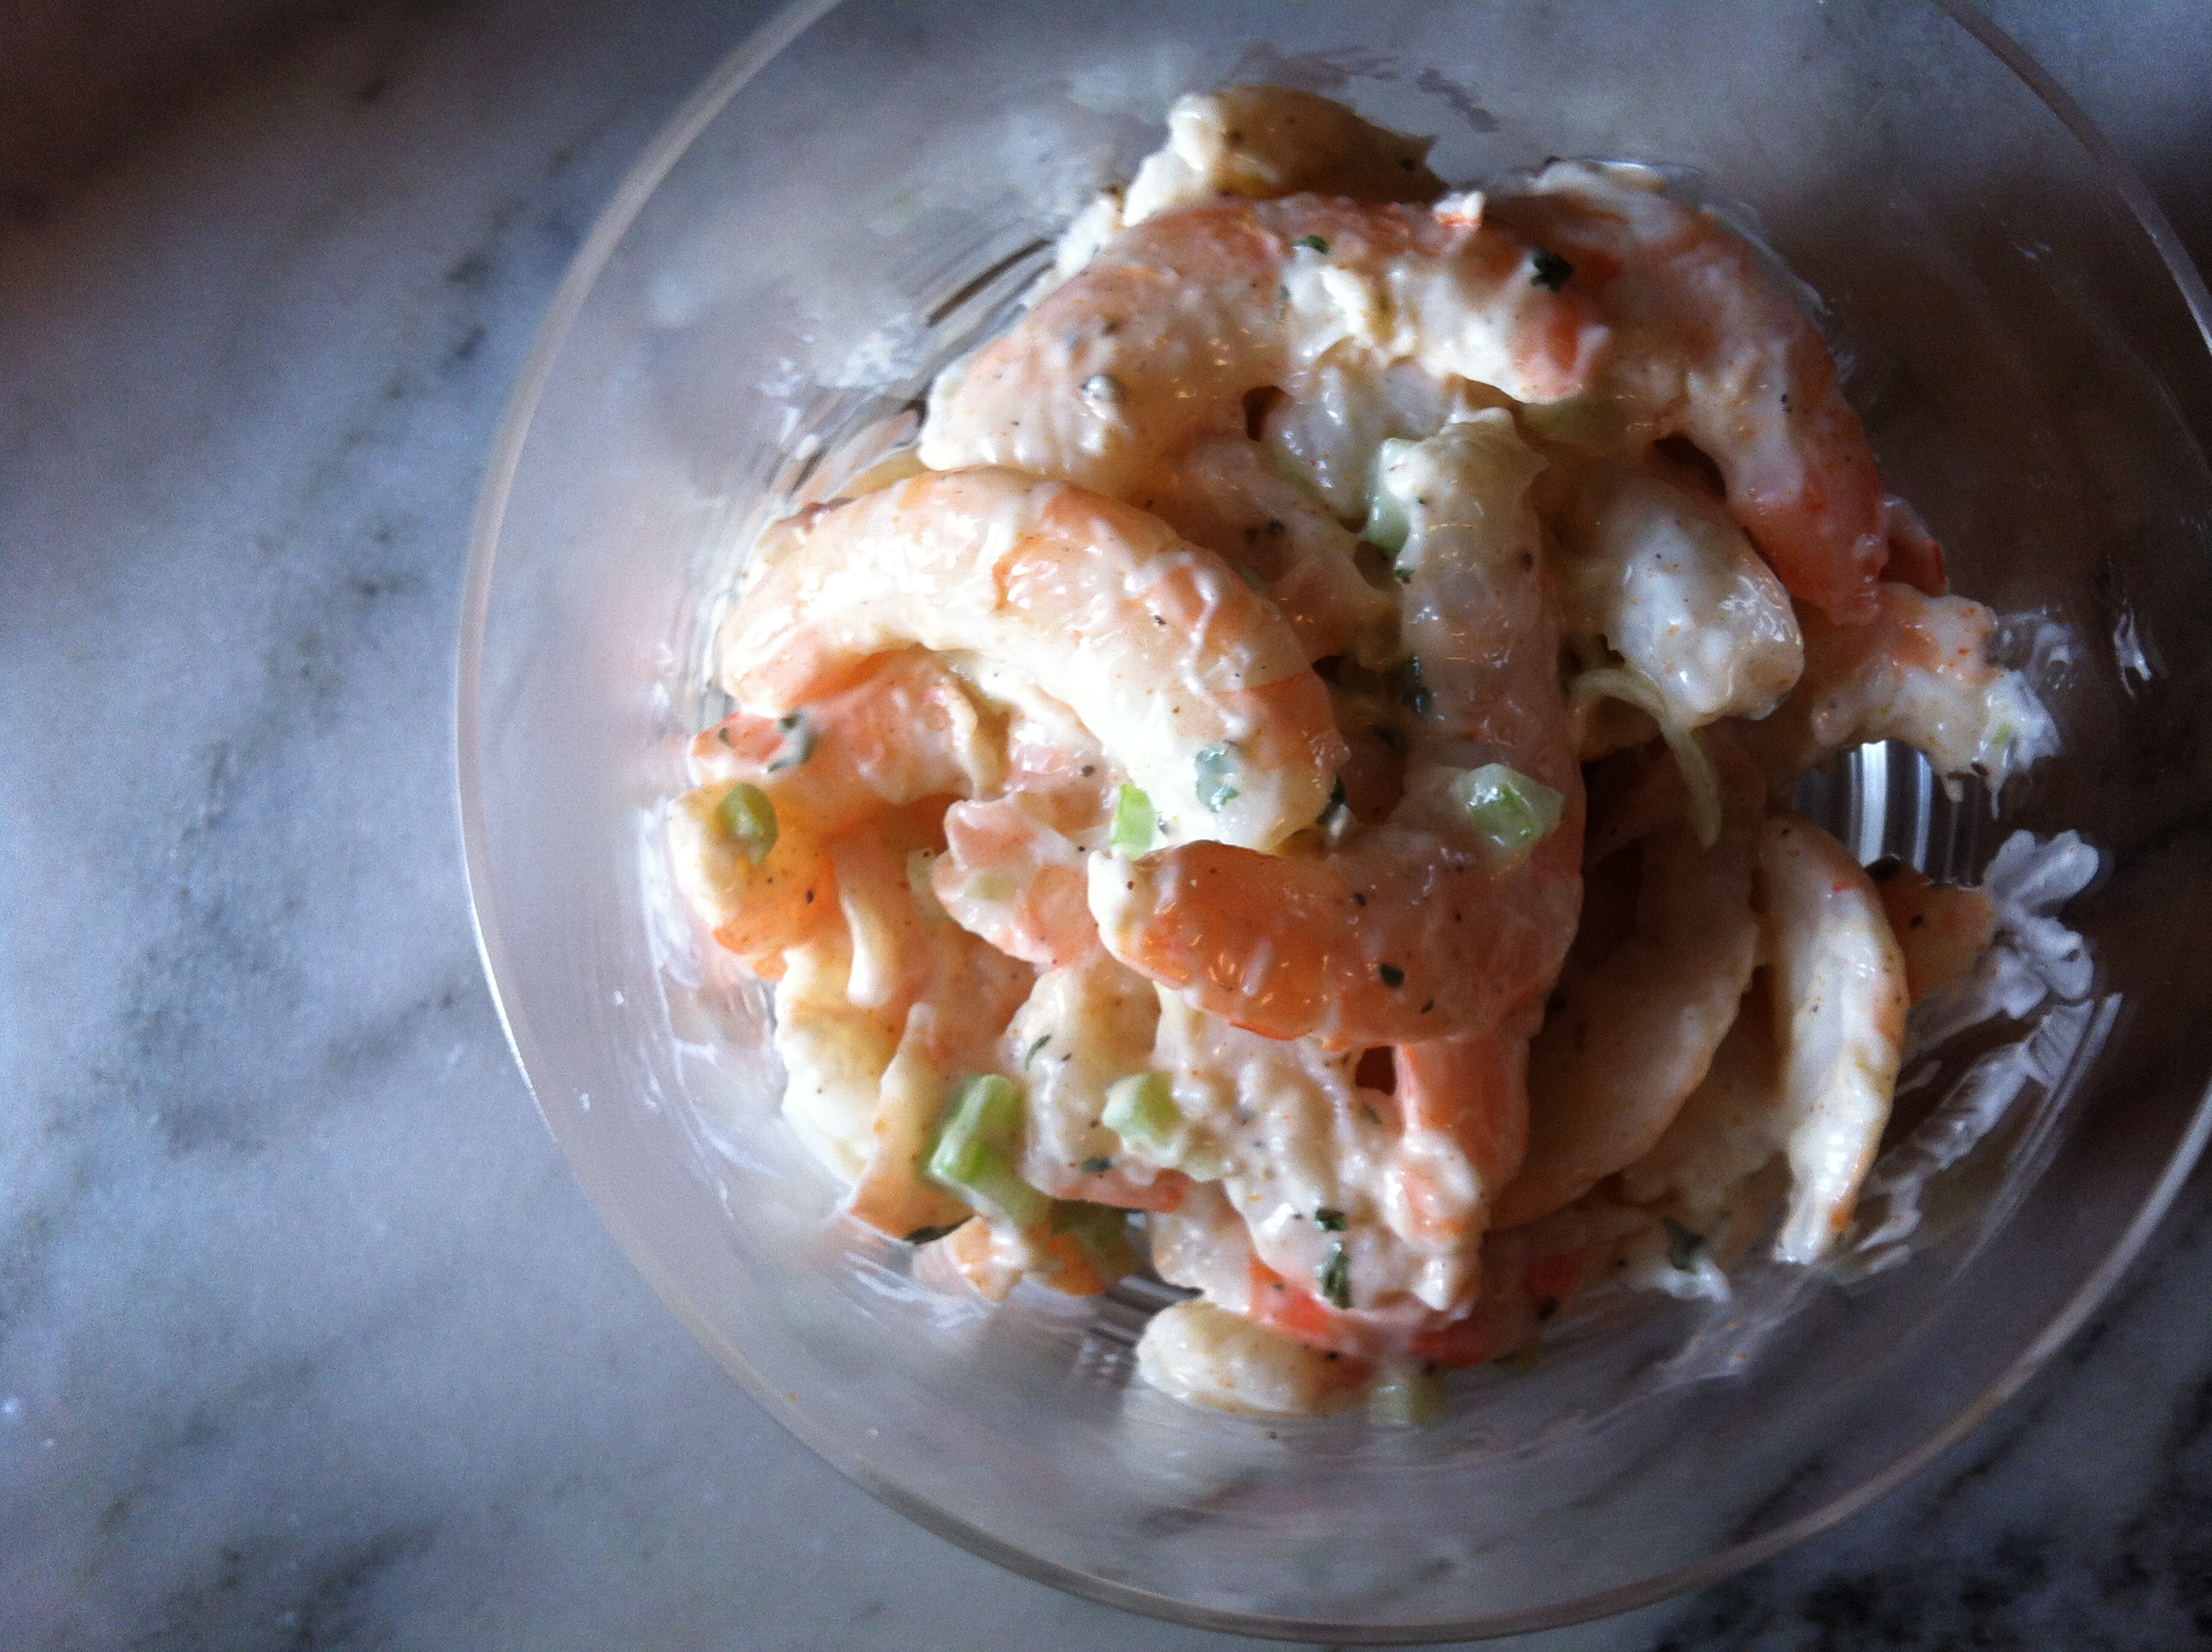 Maryland Shrimp Salad